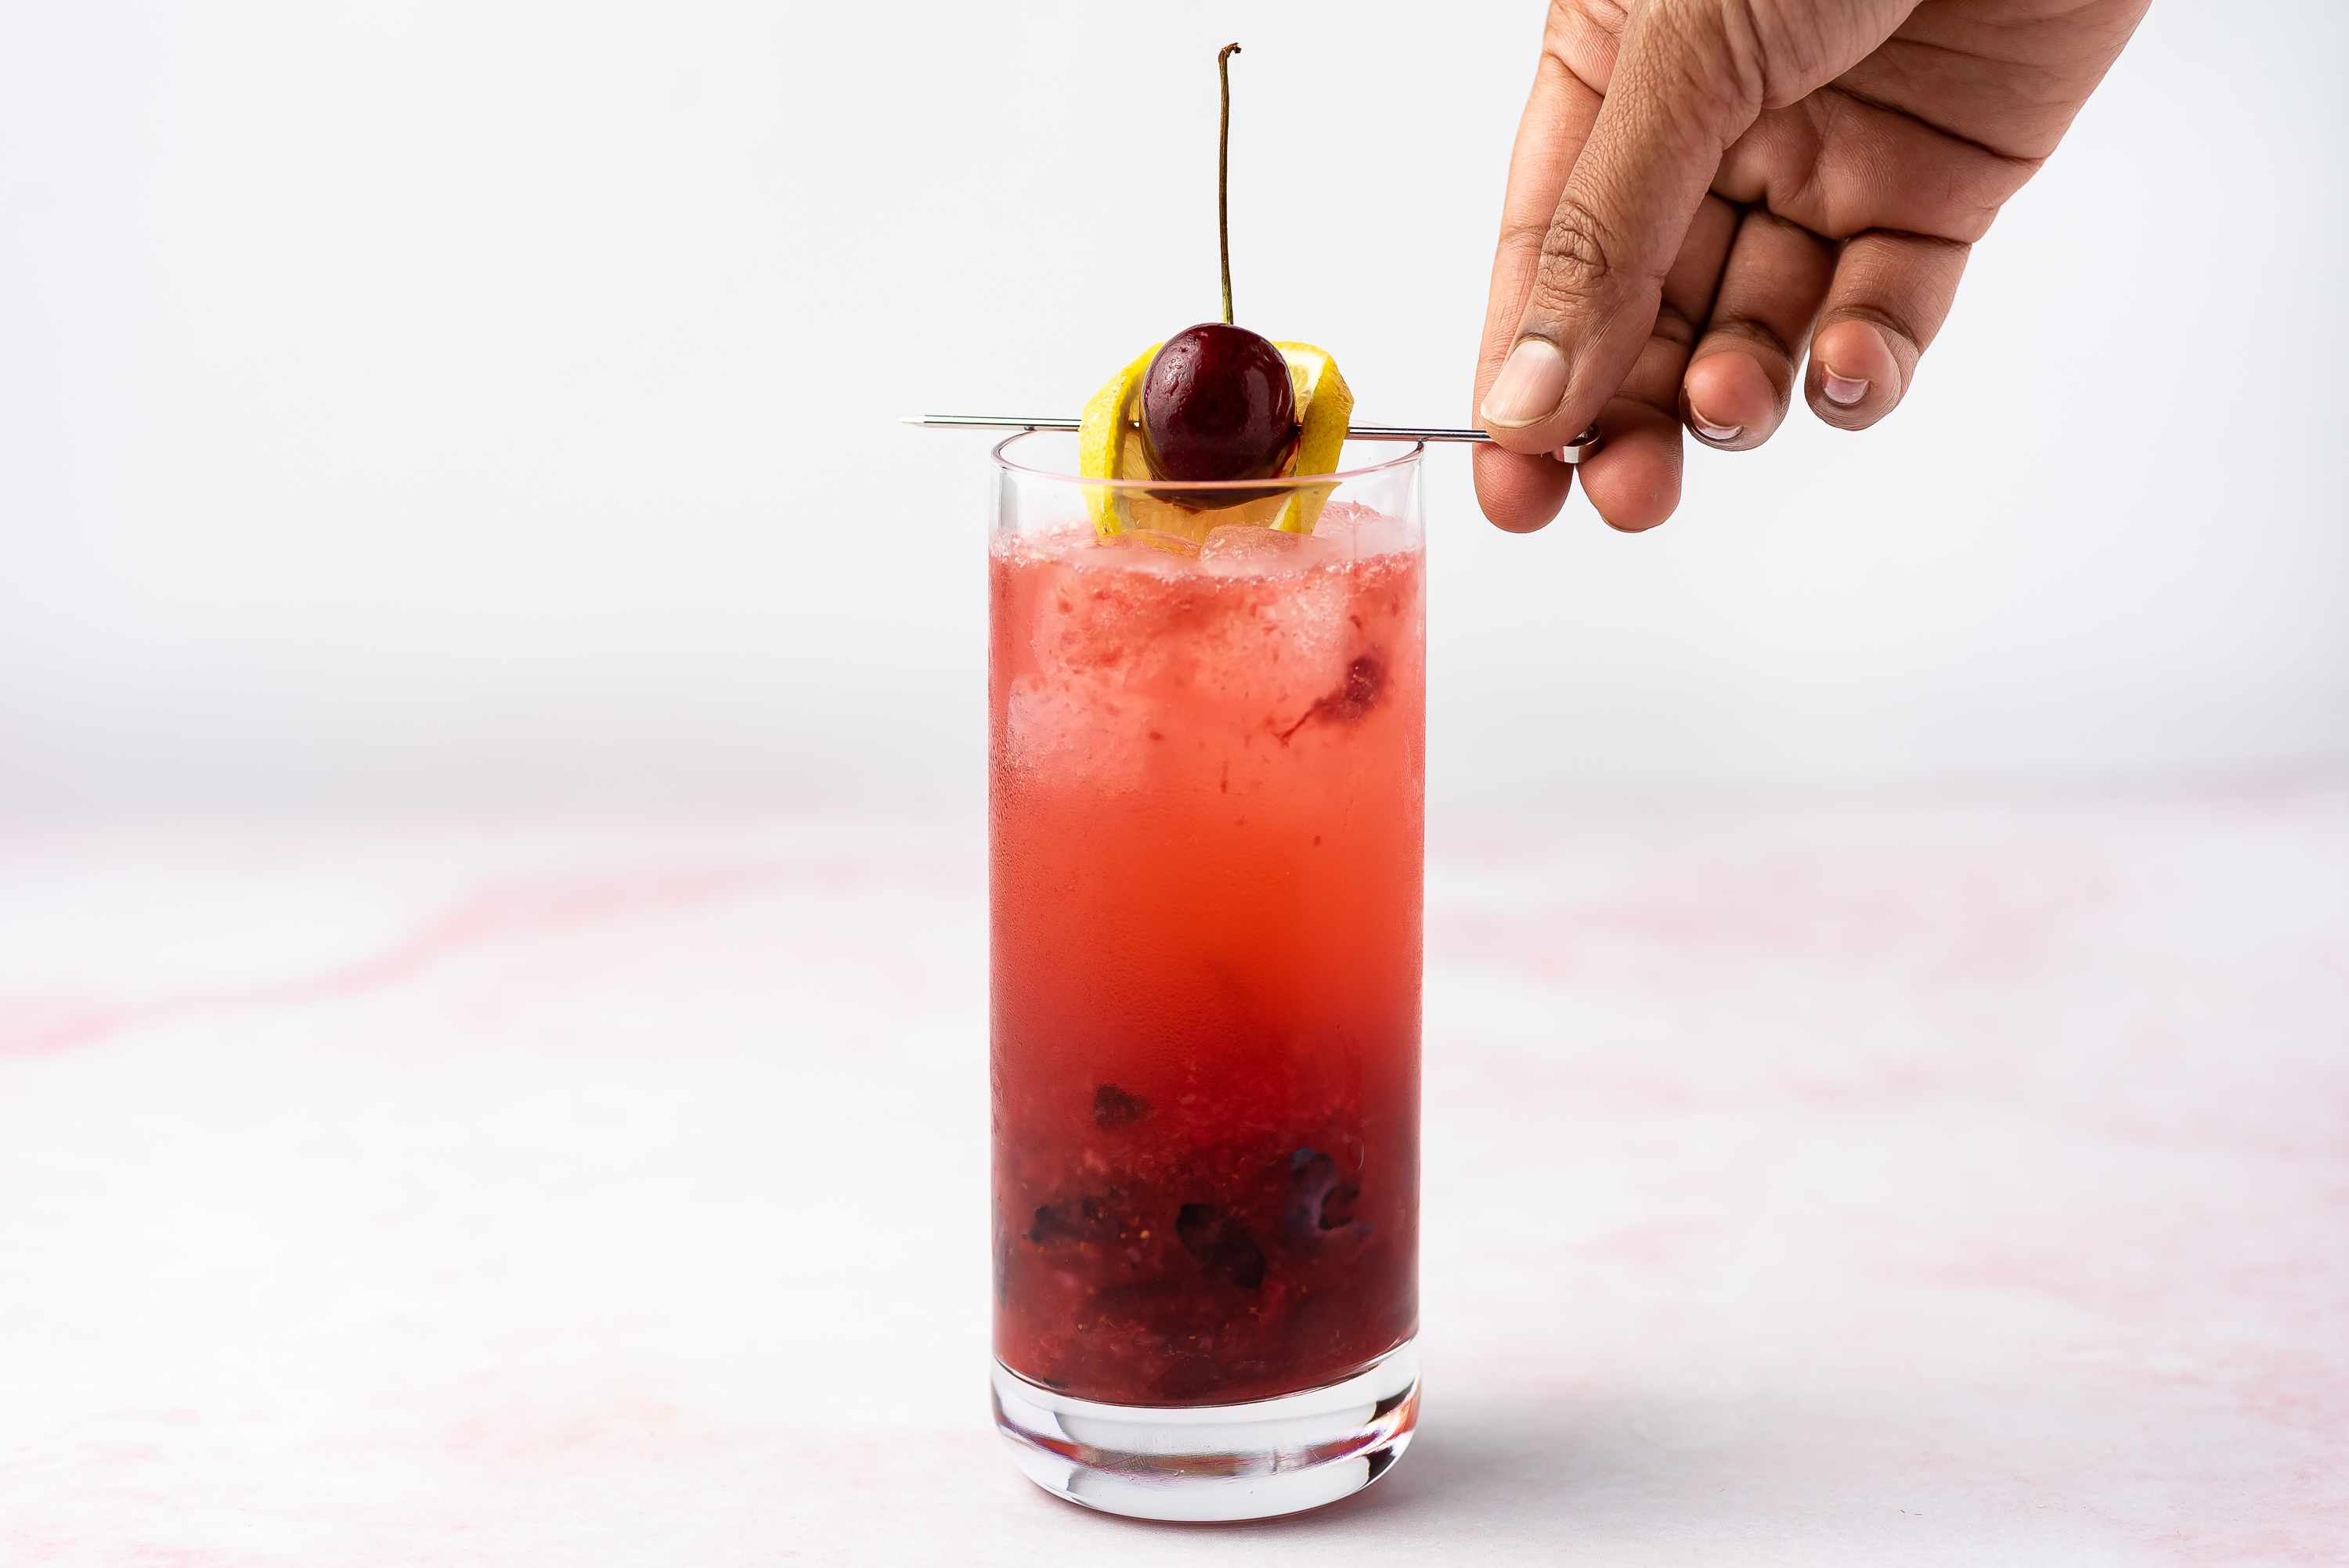 American Collins Cocktail, garnished with a lemon wheel and cherry